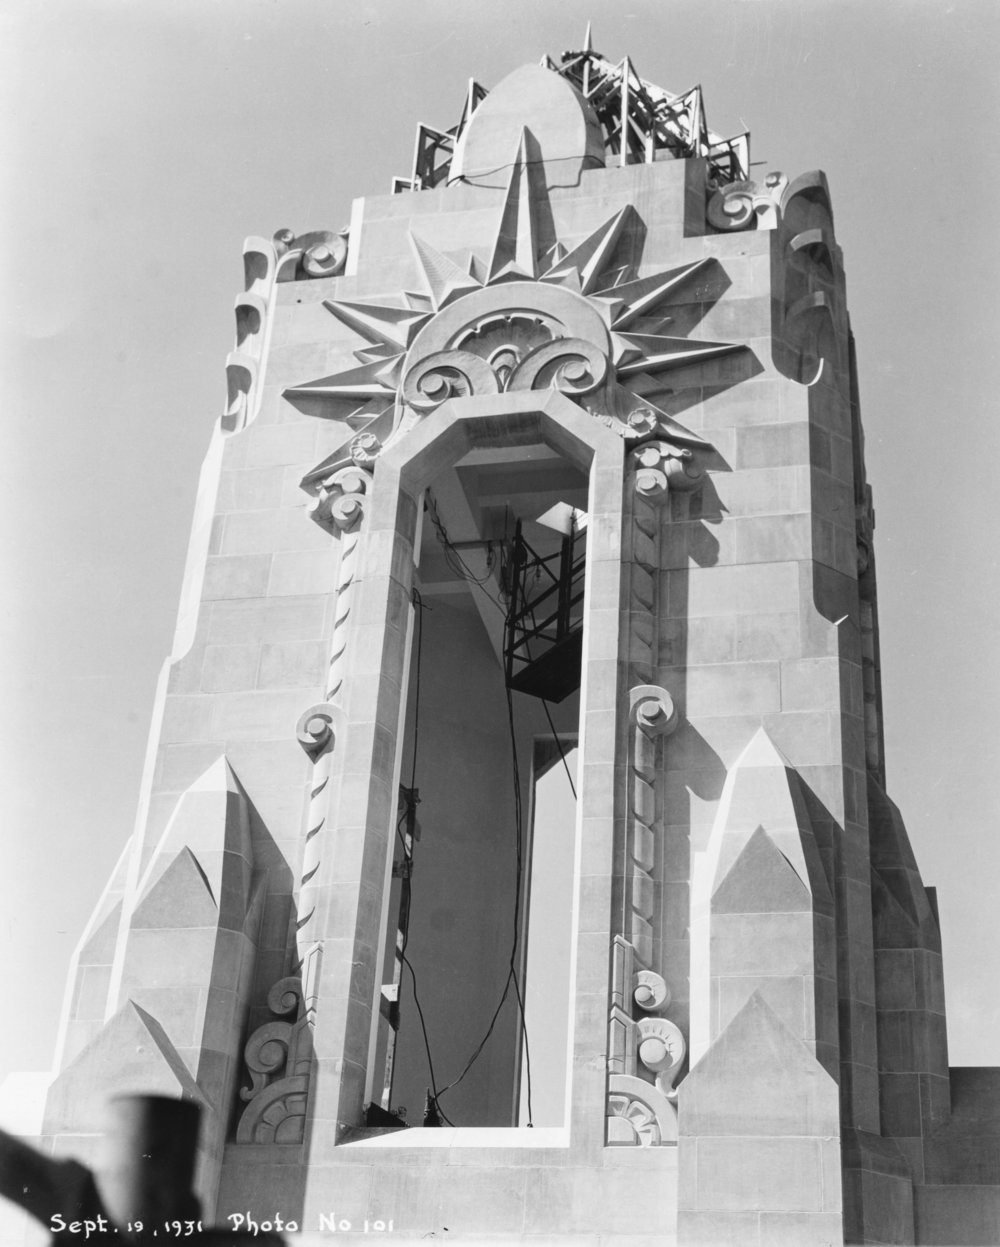 Wilborn Collection K ansas City Power & Light tower art deco lantern near completion September 19 1931 Photo No. 101.jpg